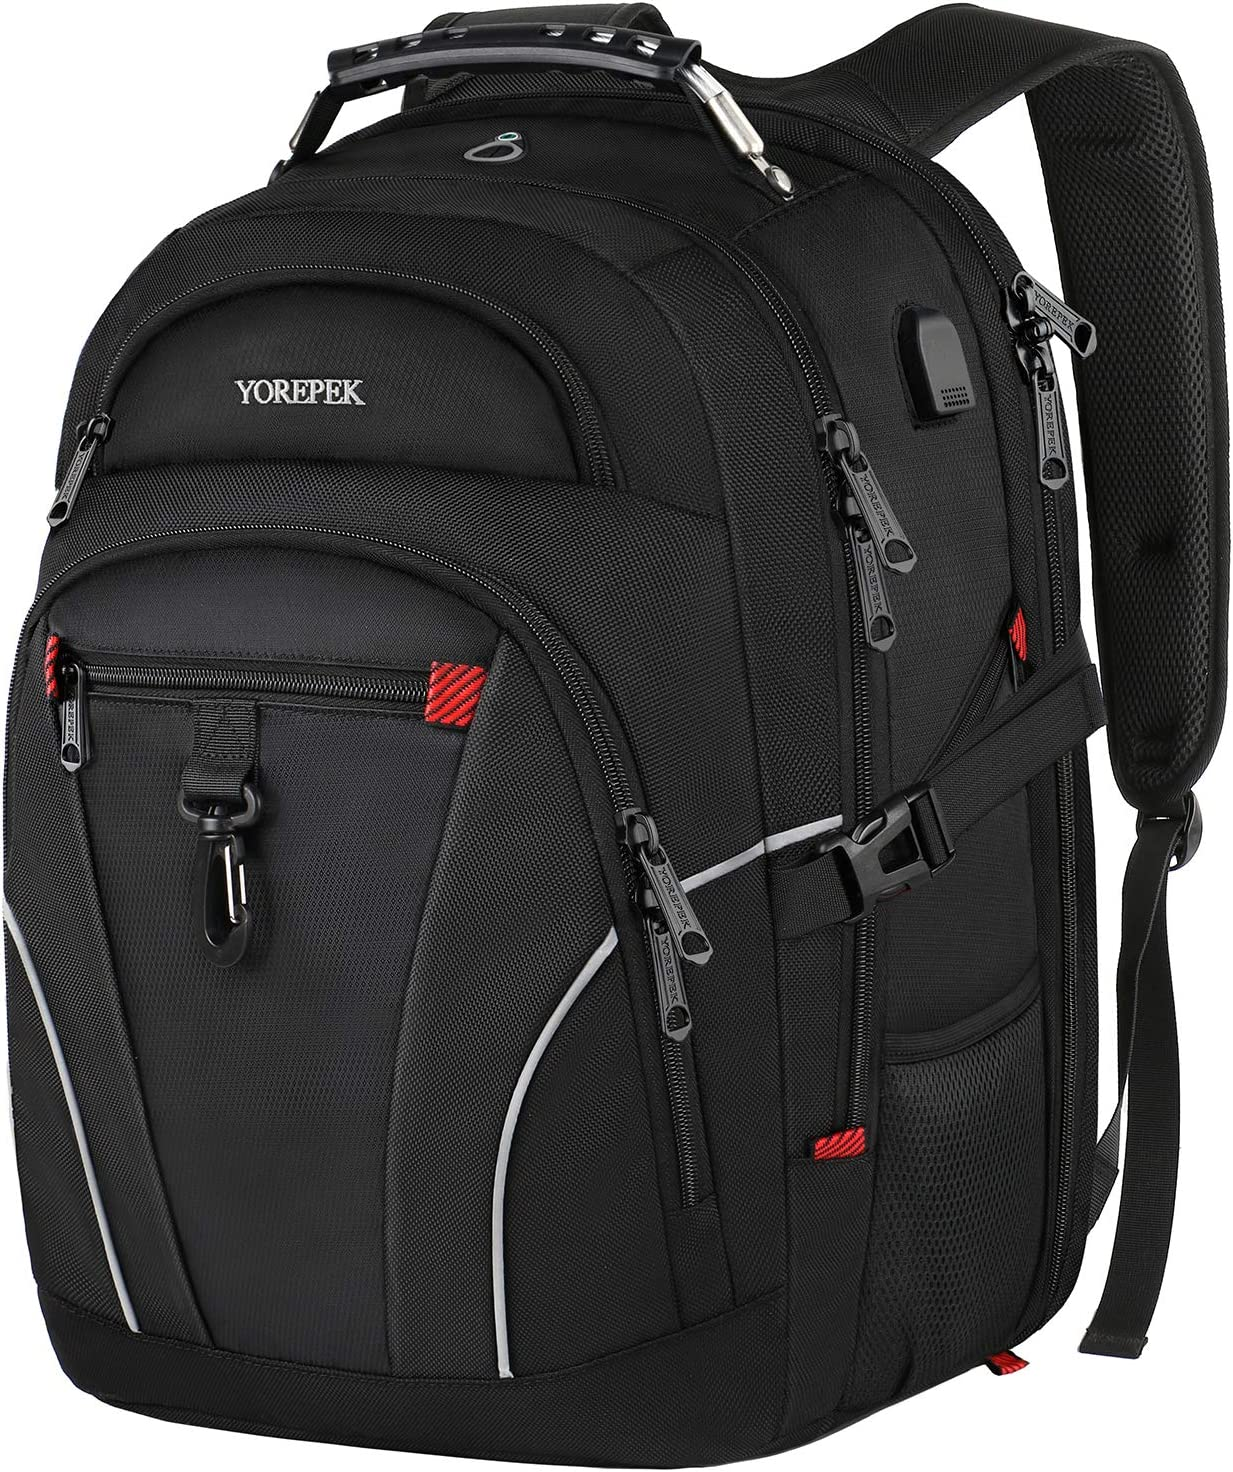 Backpack for Men Travel,Large Laptop Backpack with USB Charging Port, TSA Friendly Water Resistant College School Computer Bag Gifts for Women and Men Fits 17 Inch Notebook, Black